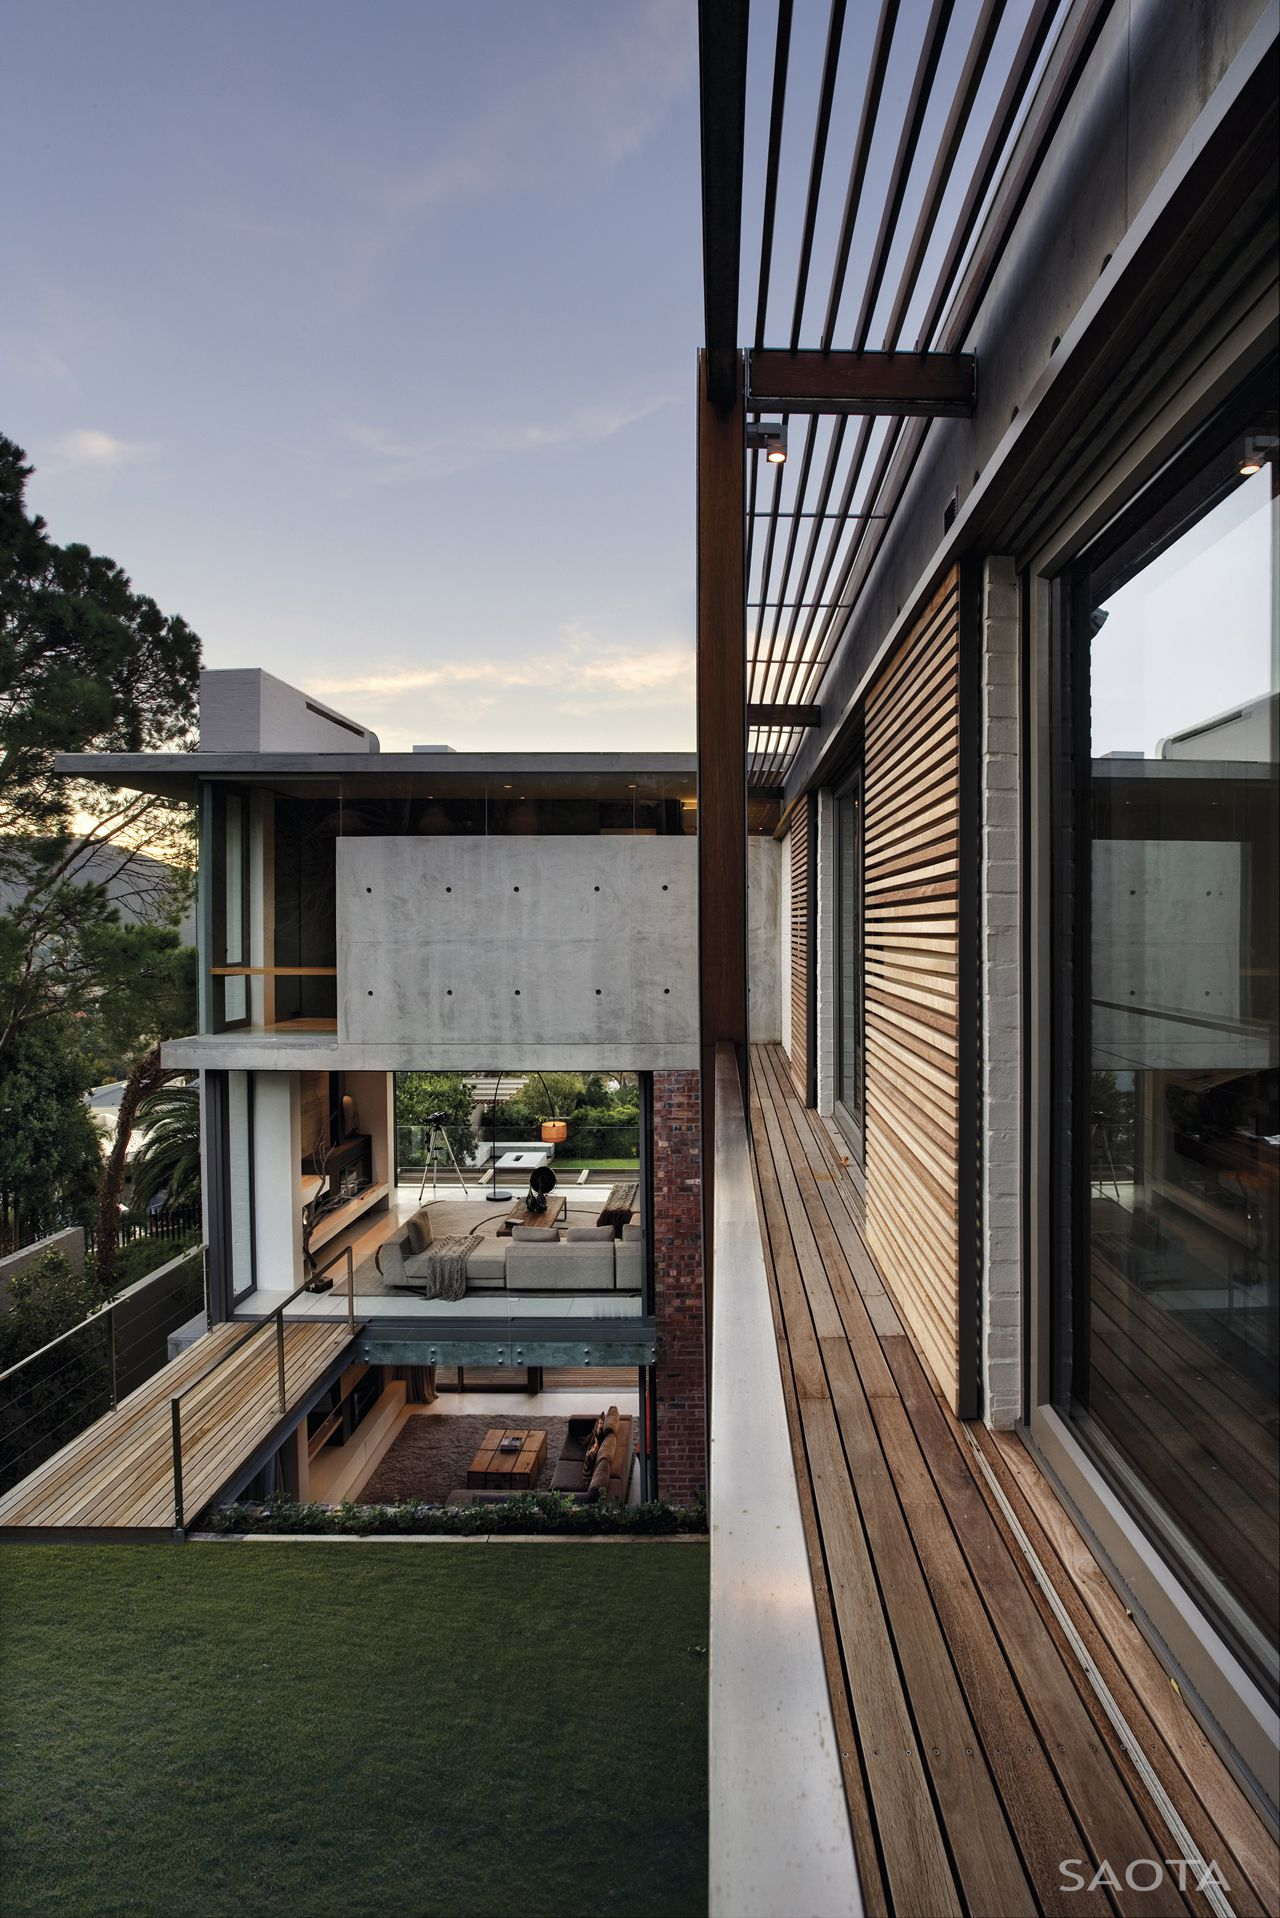 glen 2961 by saota caandesign architecture and home hopewell glen the gardens the bayhill home design